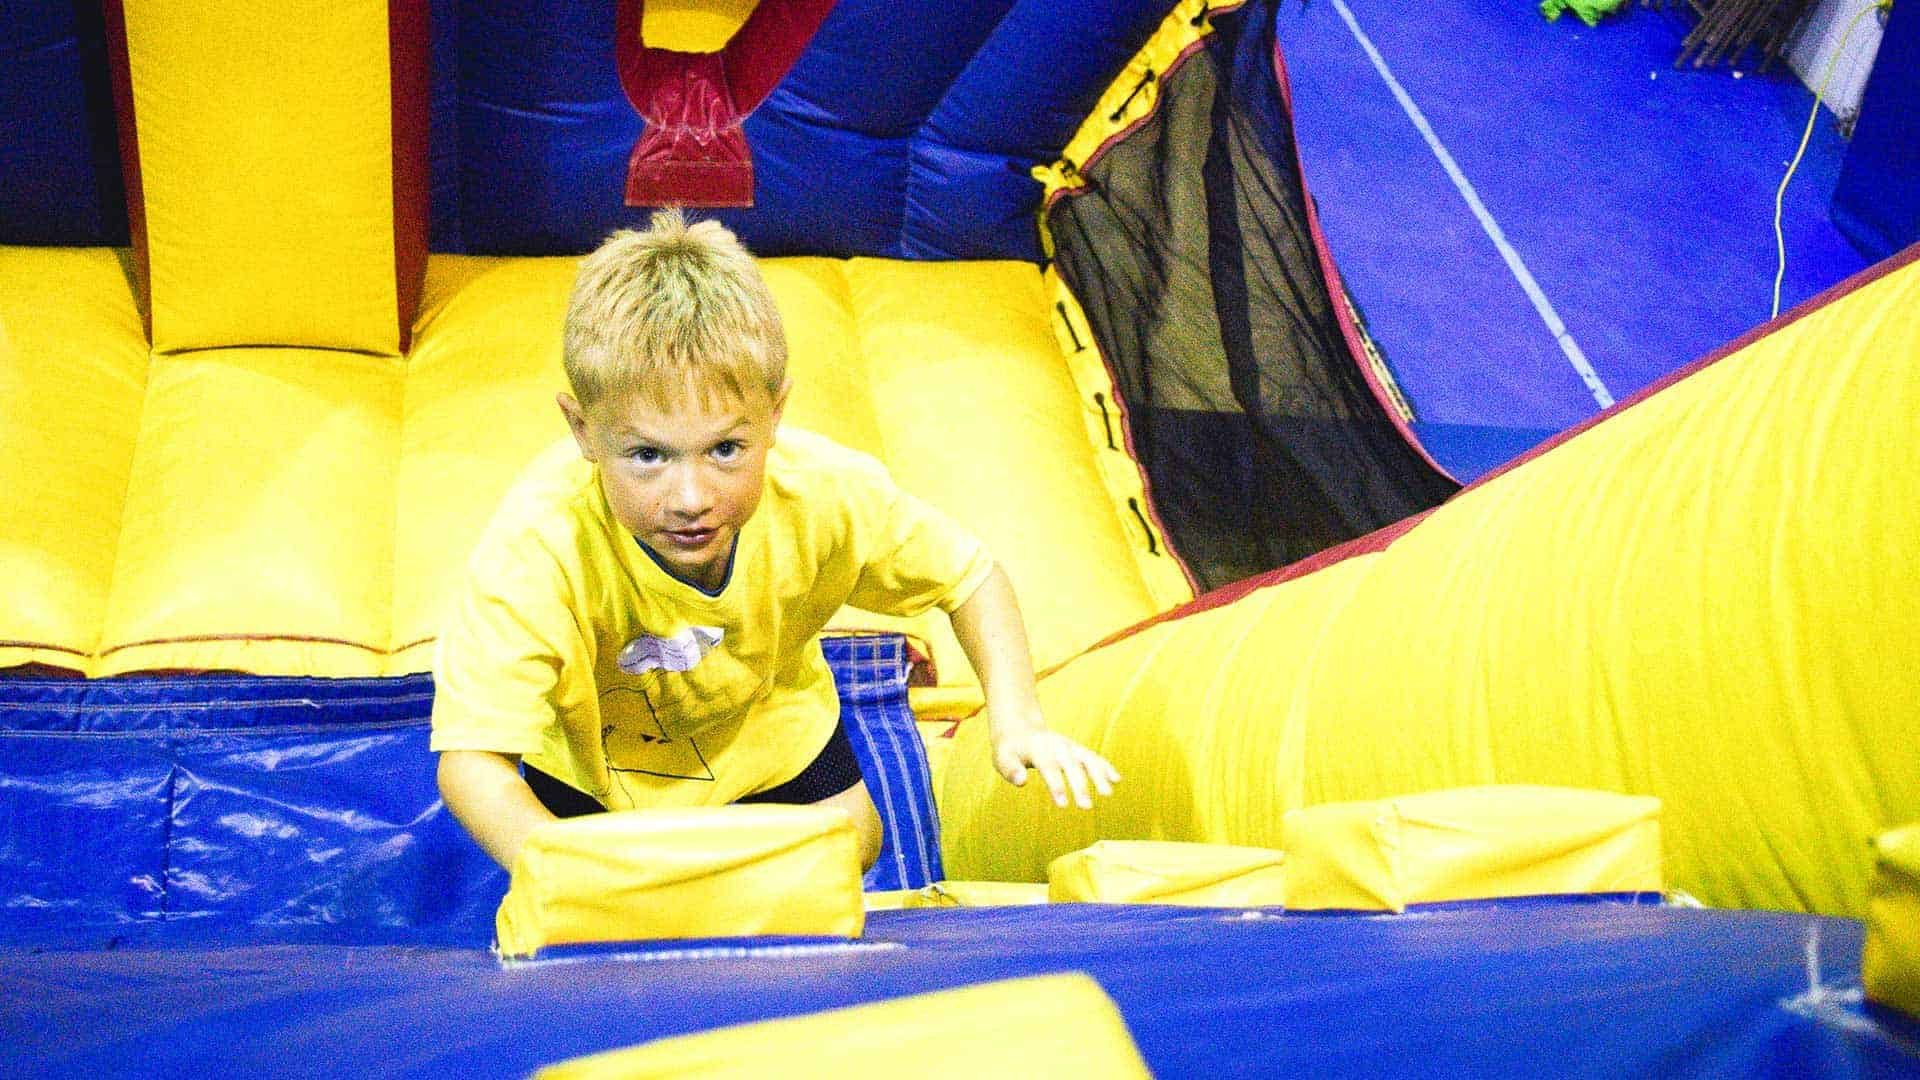 Young boy on inflatable bounce house